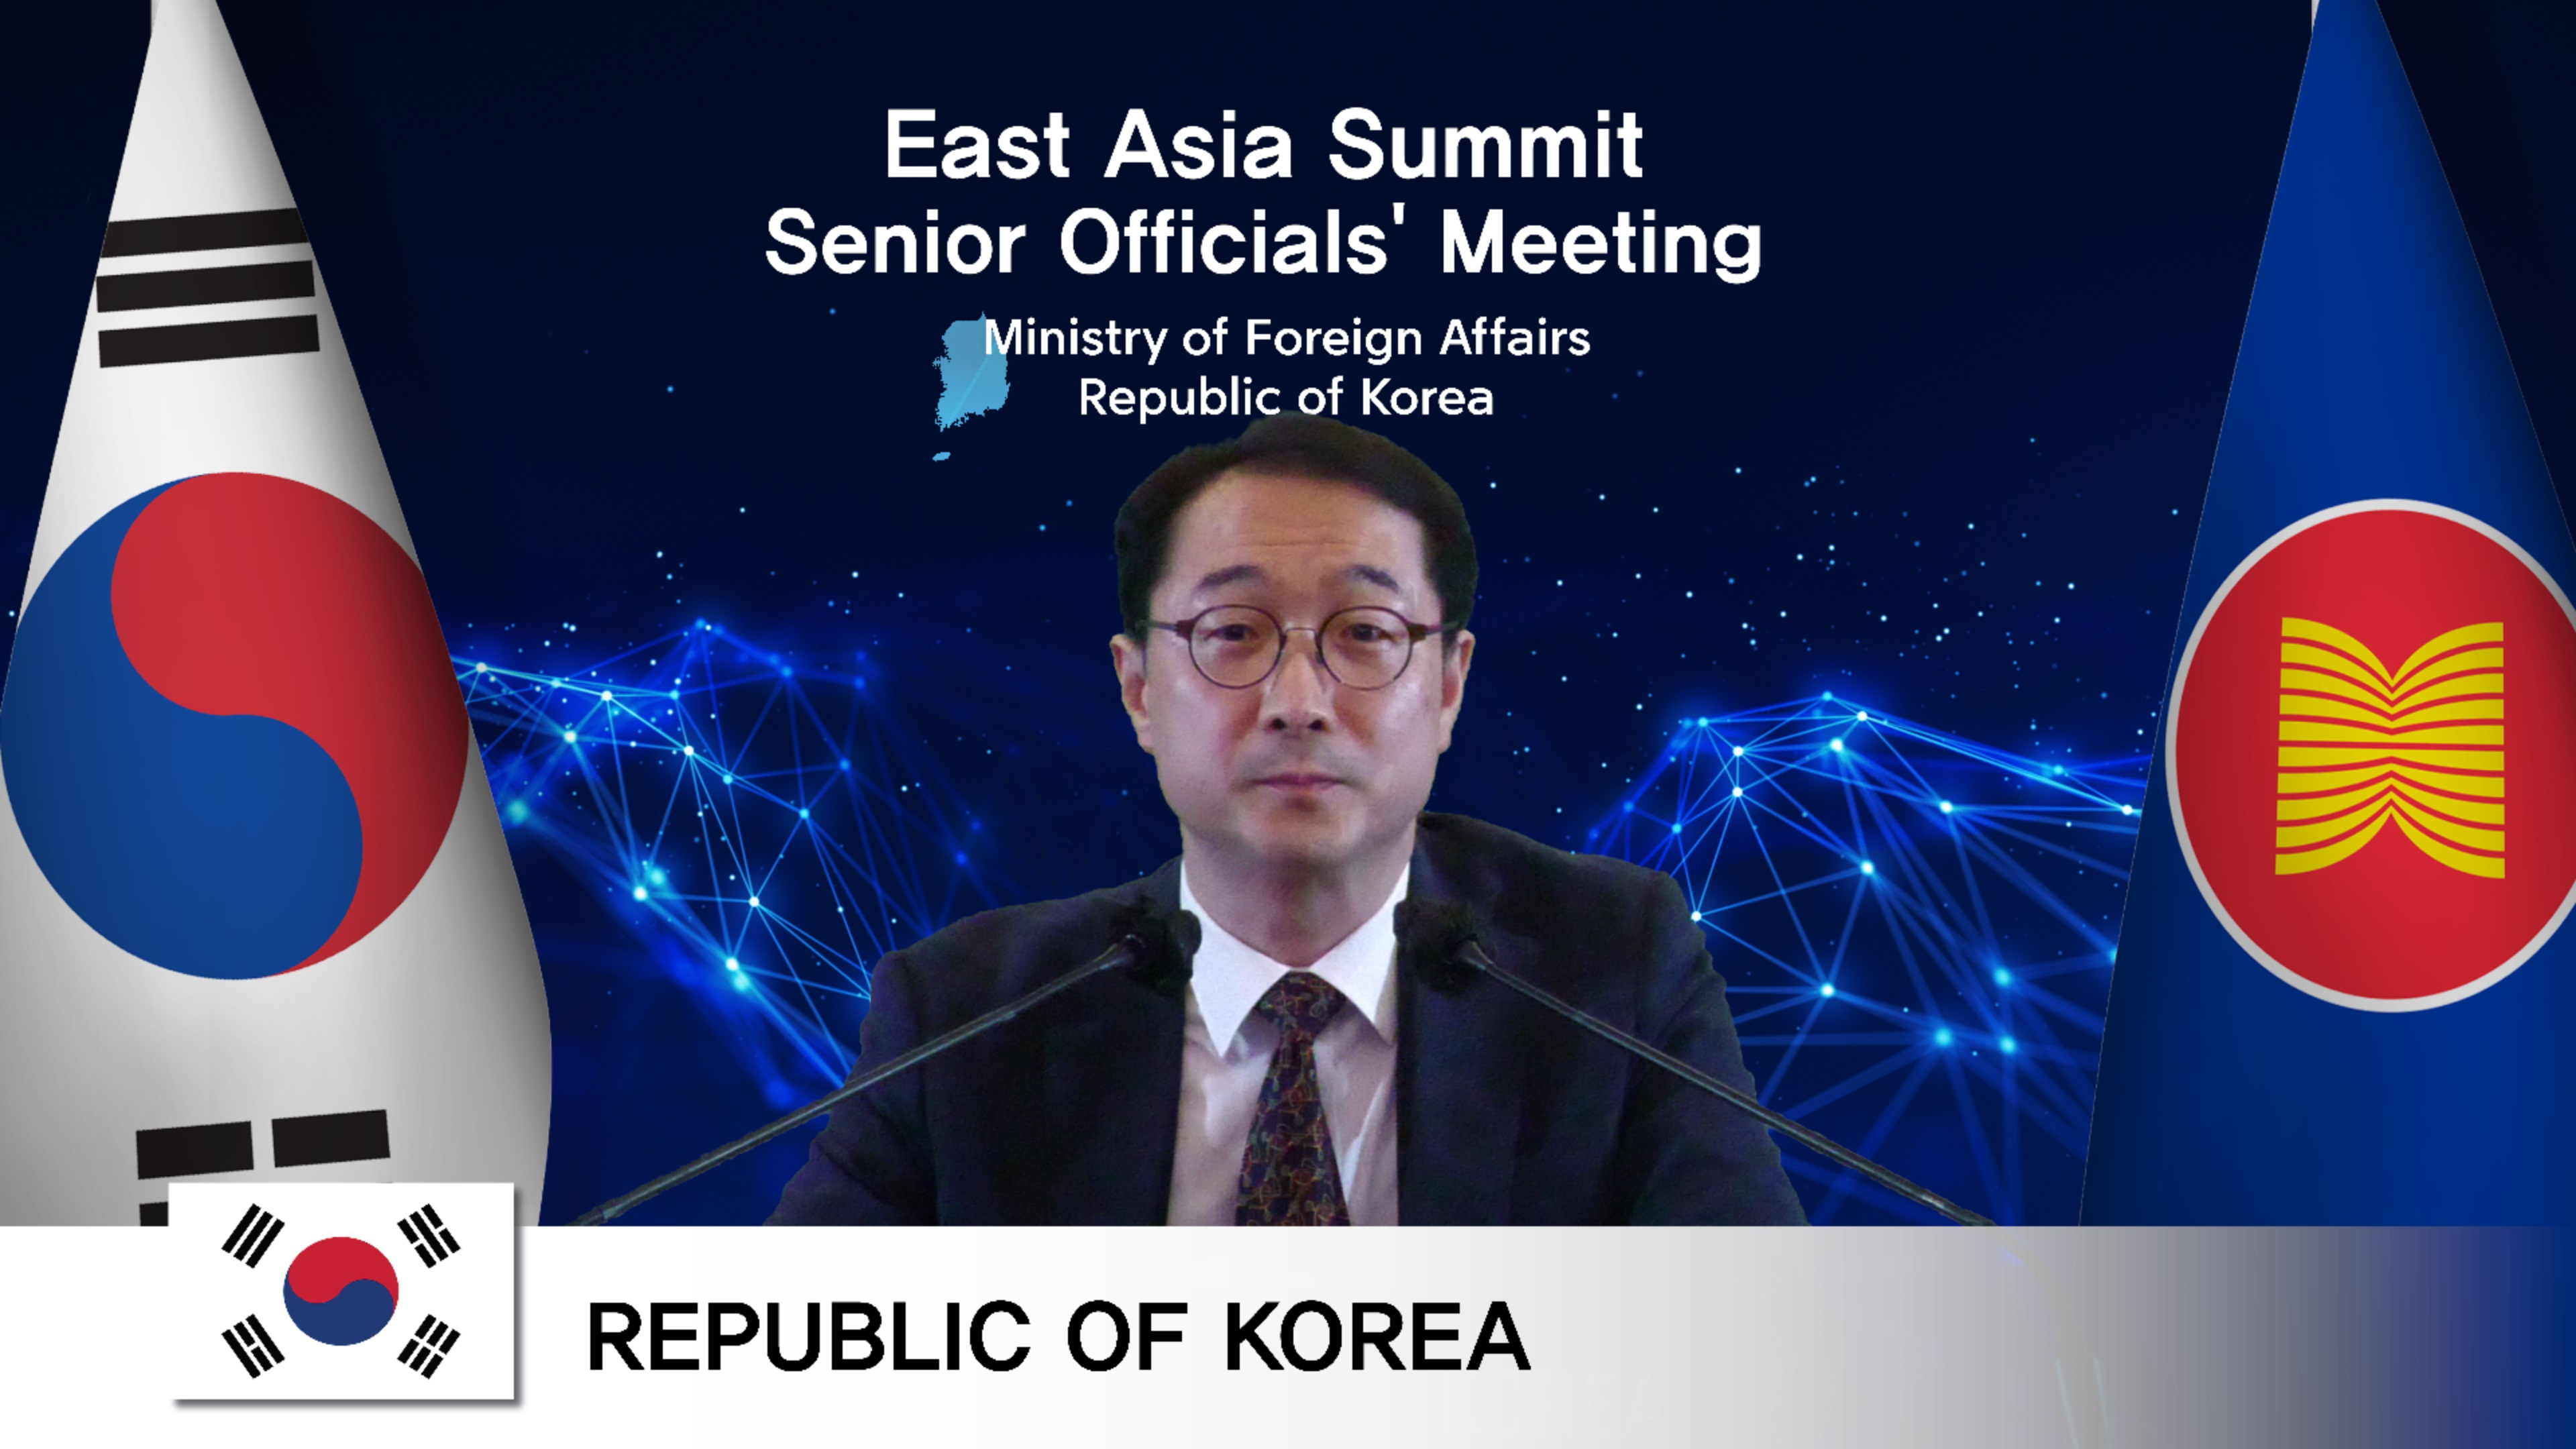 East Asia Summit (EAS) Senior Officials' Meeting (SOM) Discusses Current Regional Issues, and Ways to Enhance Peace and Prosperity